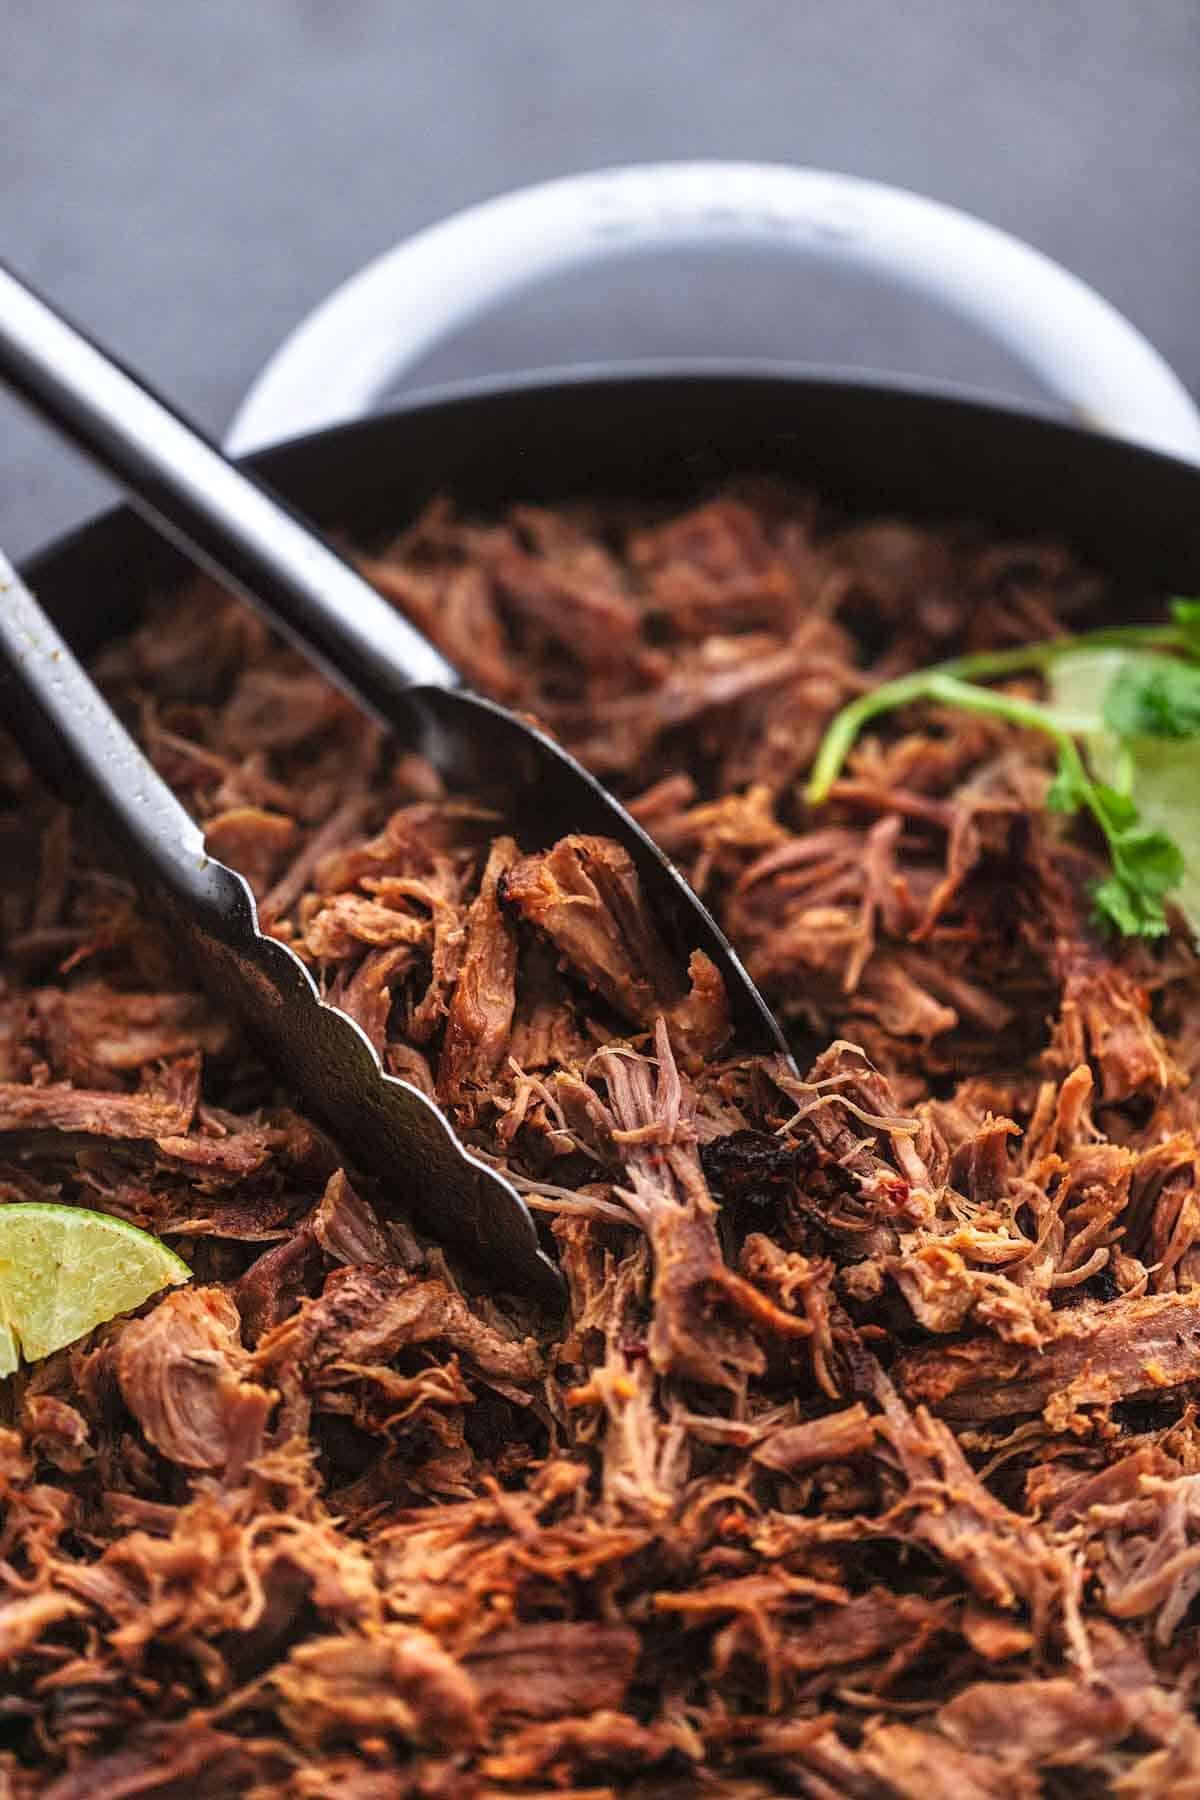 up close shredded pork held by tongs in a skillet